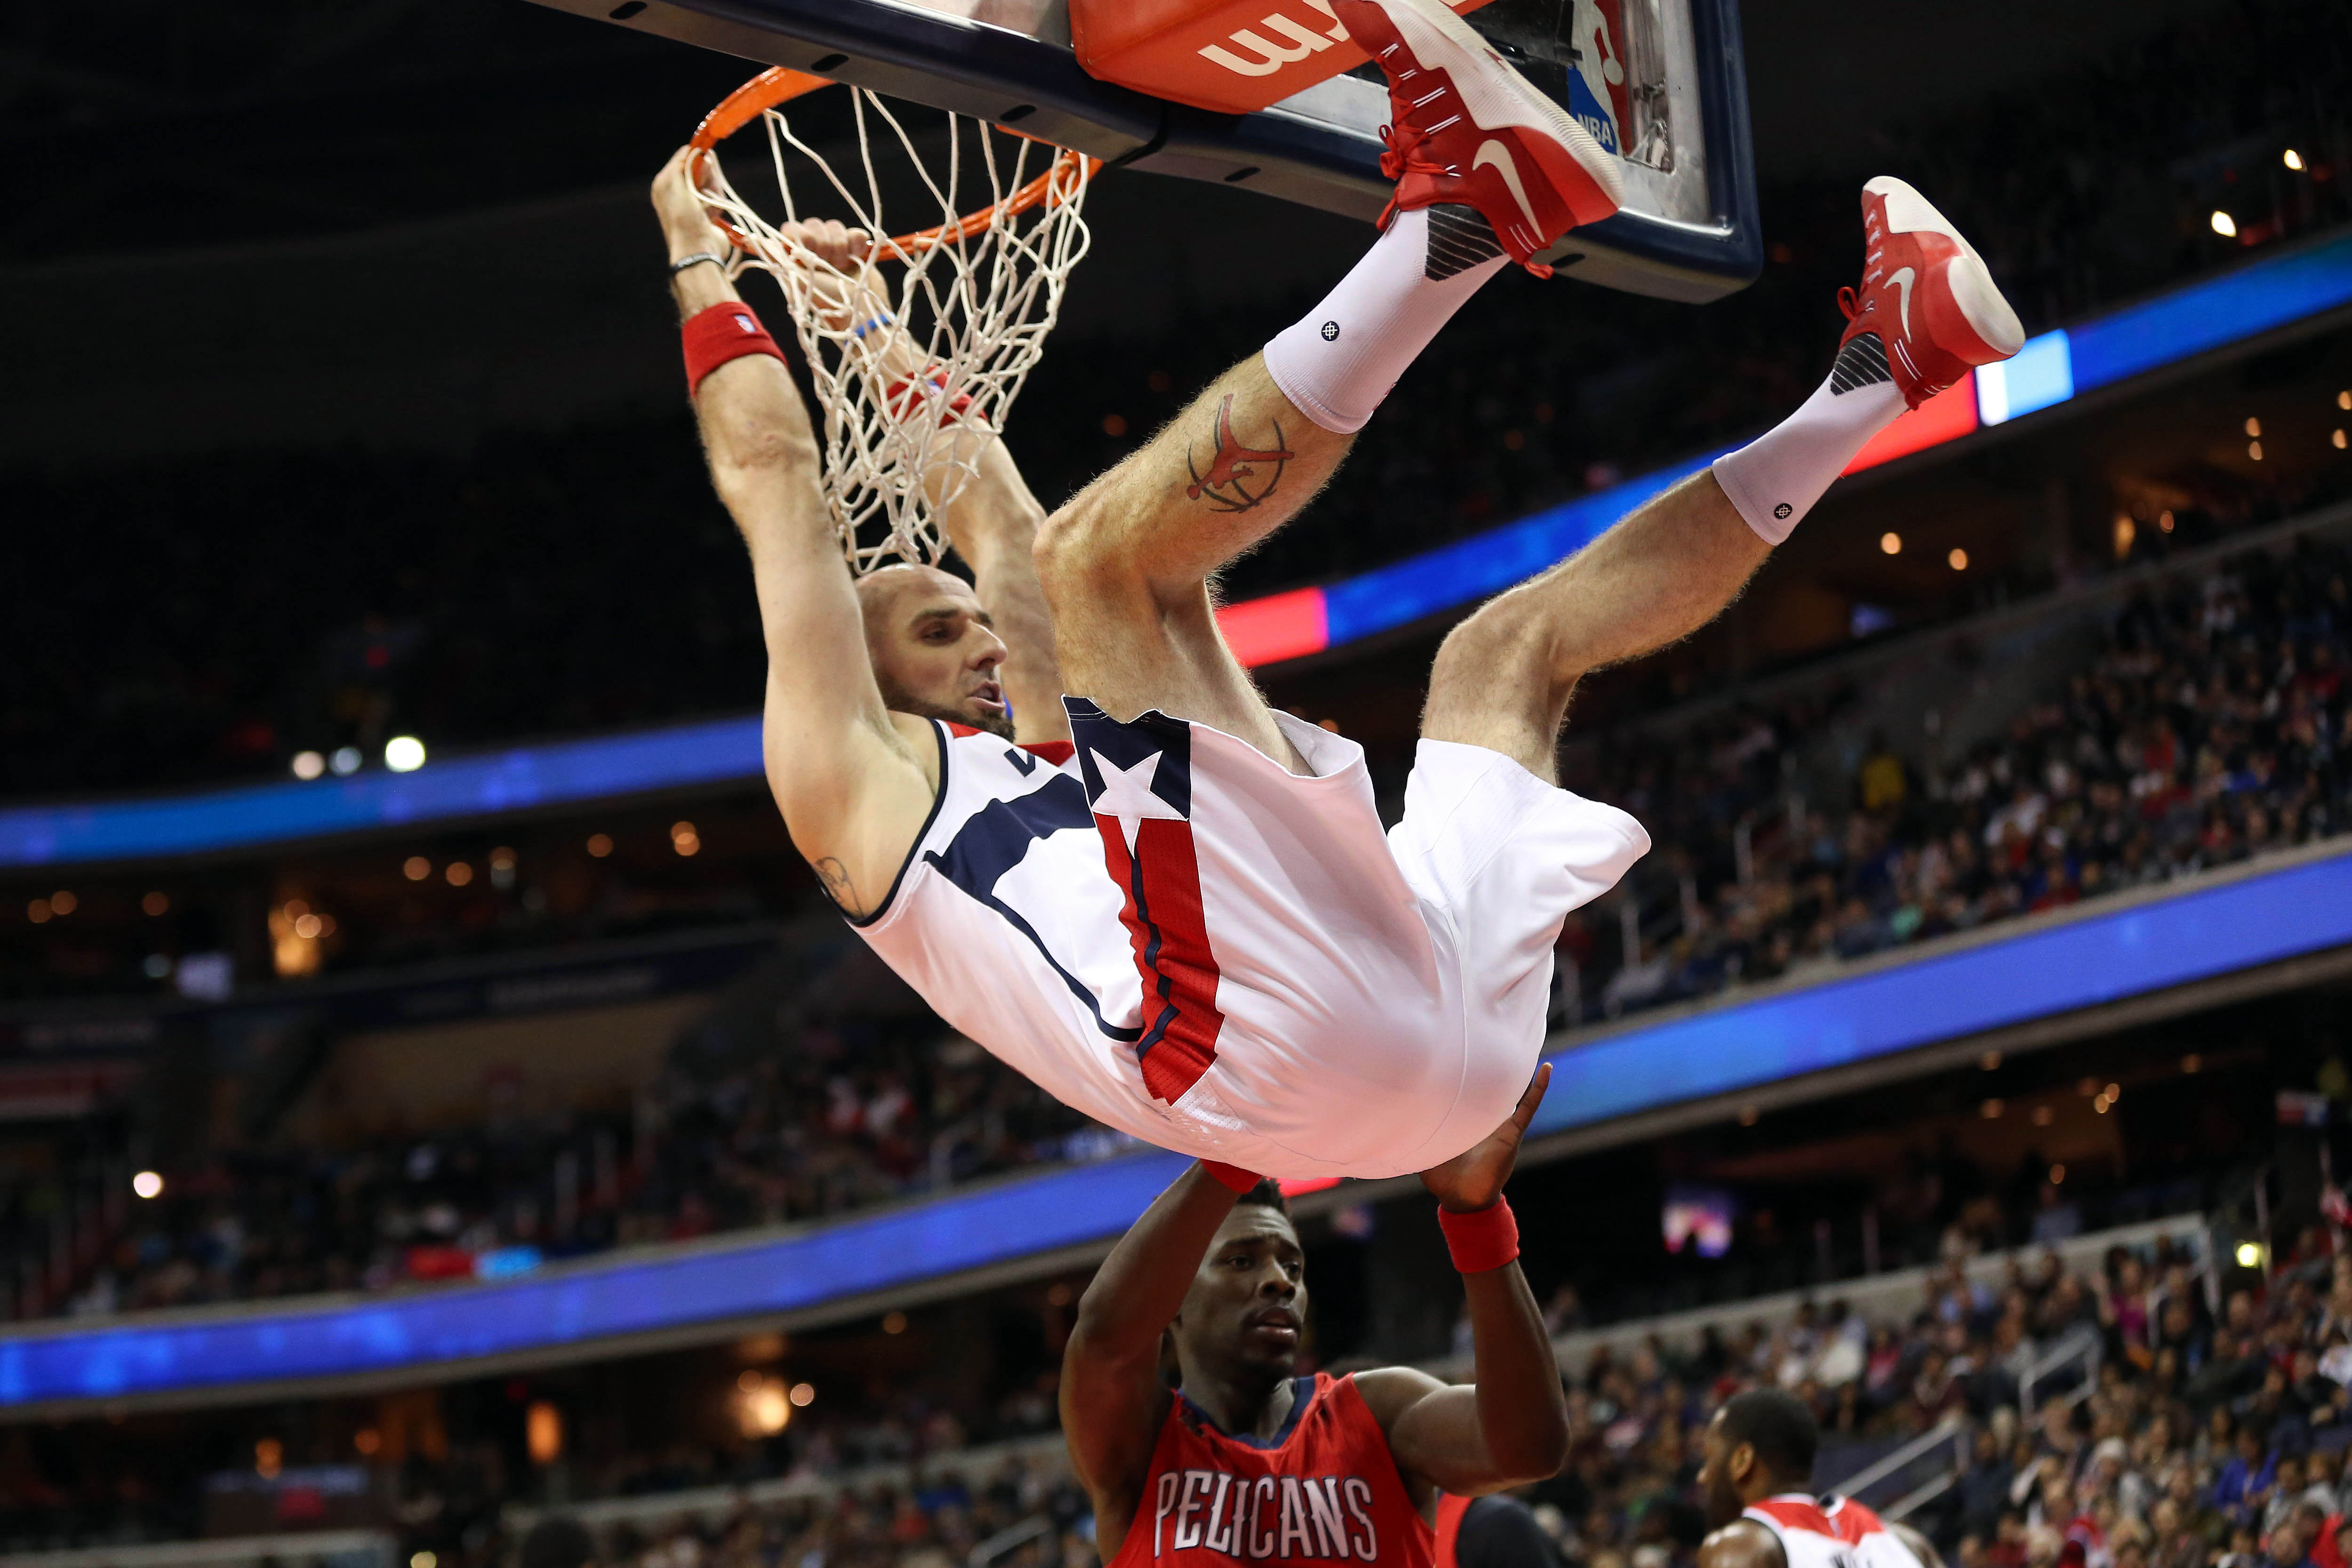 9859536-nba-new-orleans-pelicans-at-washington-wizards